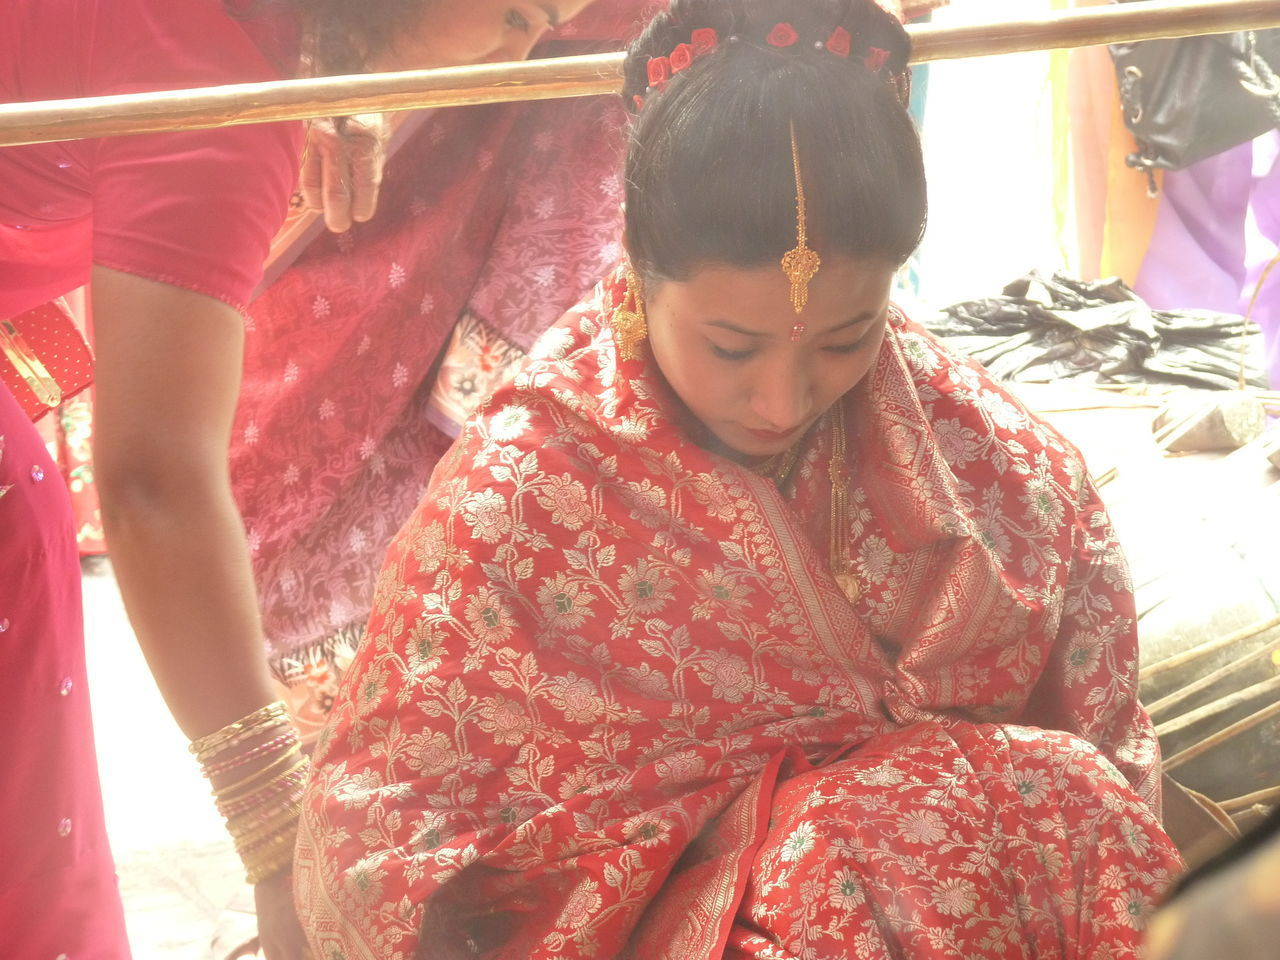 Colorful Wedding Discovering New Cultures EyeEm Diversity Moments Of A Travel To Remember Rare Moment Real People Religion And Tradition Sari Travelling Around The World Wedding Ceremony Wedding Dress Young Women The Portraitist - 2017 EyeEm Awards